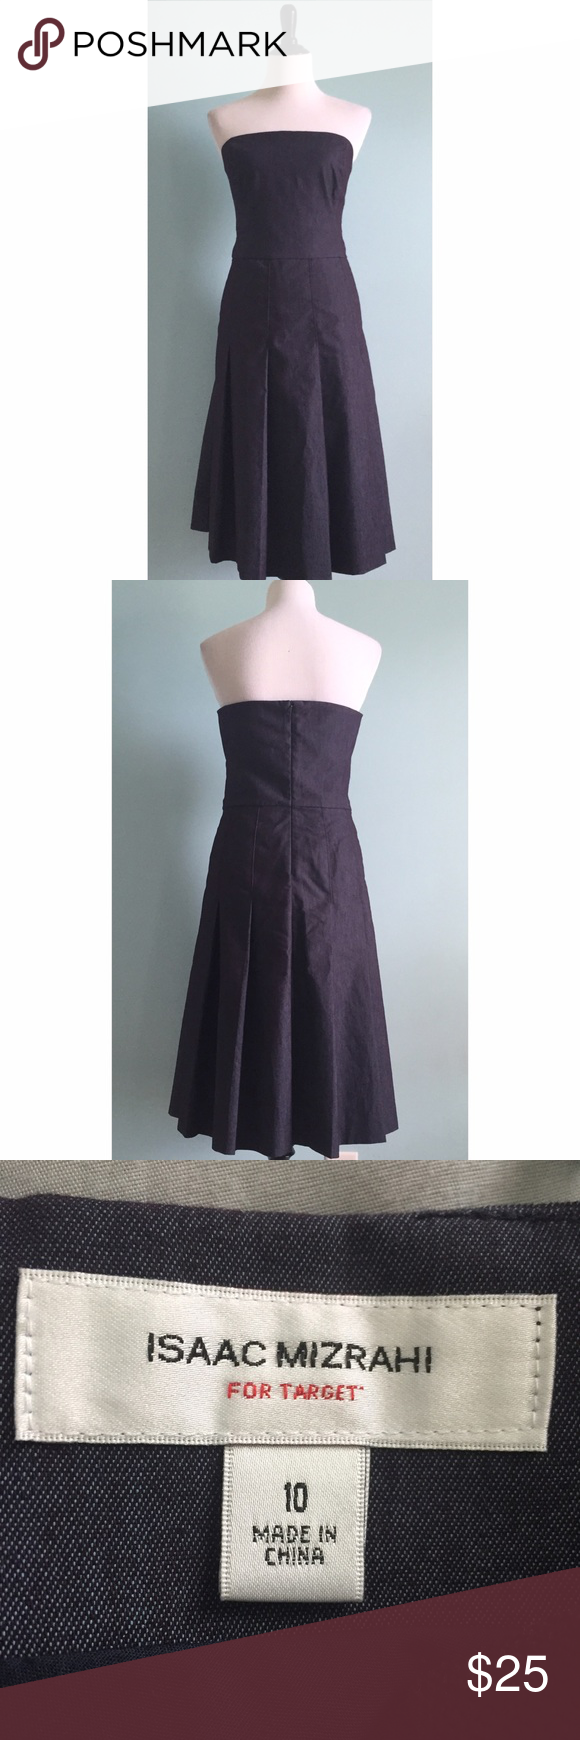 c9b1c2f6ea74 Pleated Isaac Mizrahi Dress Strapless denim midi dress by Isaaz Mizrahi for  Target. In excellent condition. Large pleating on skirt and drop waist. Size  10.